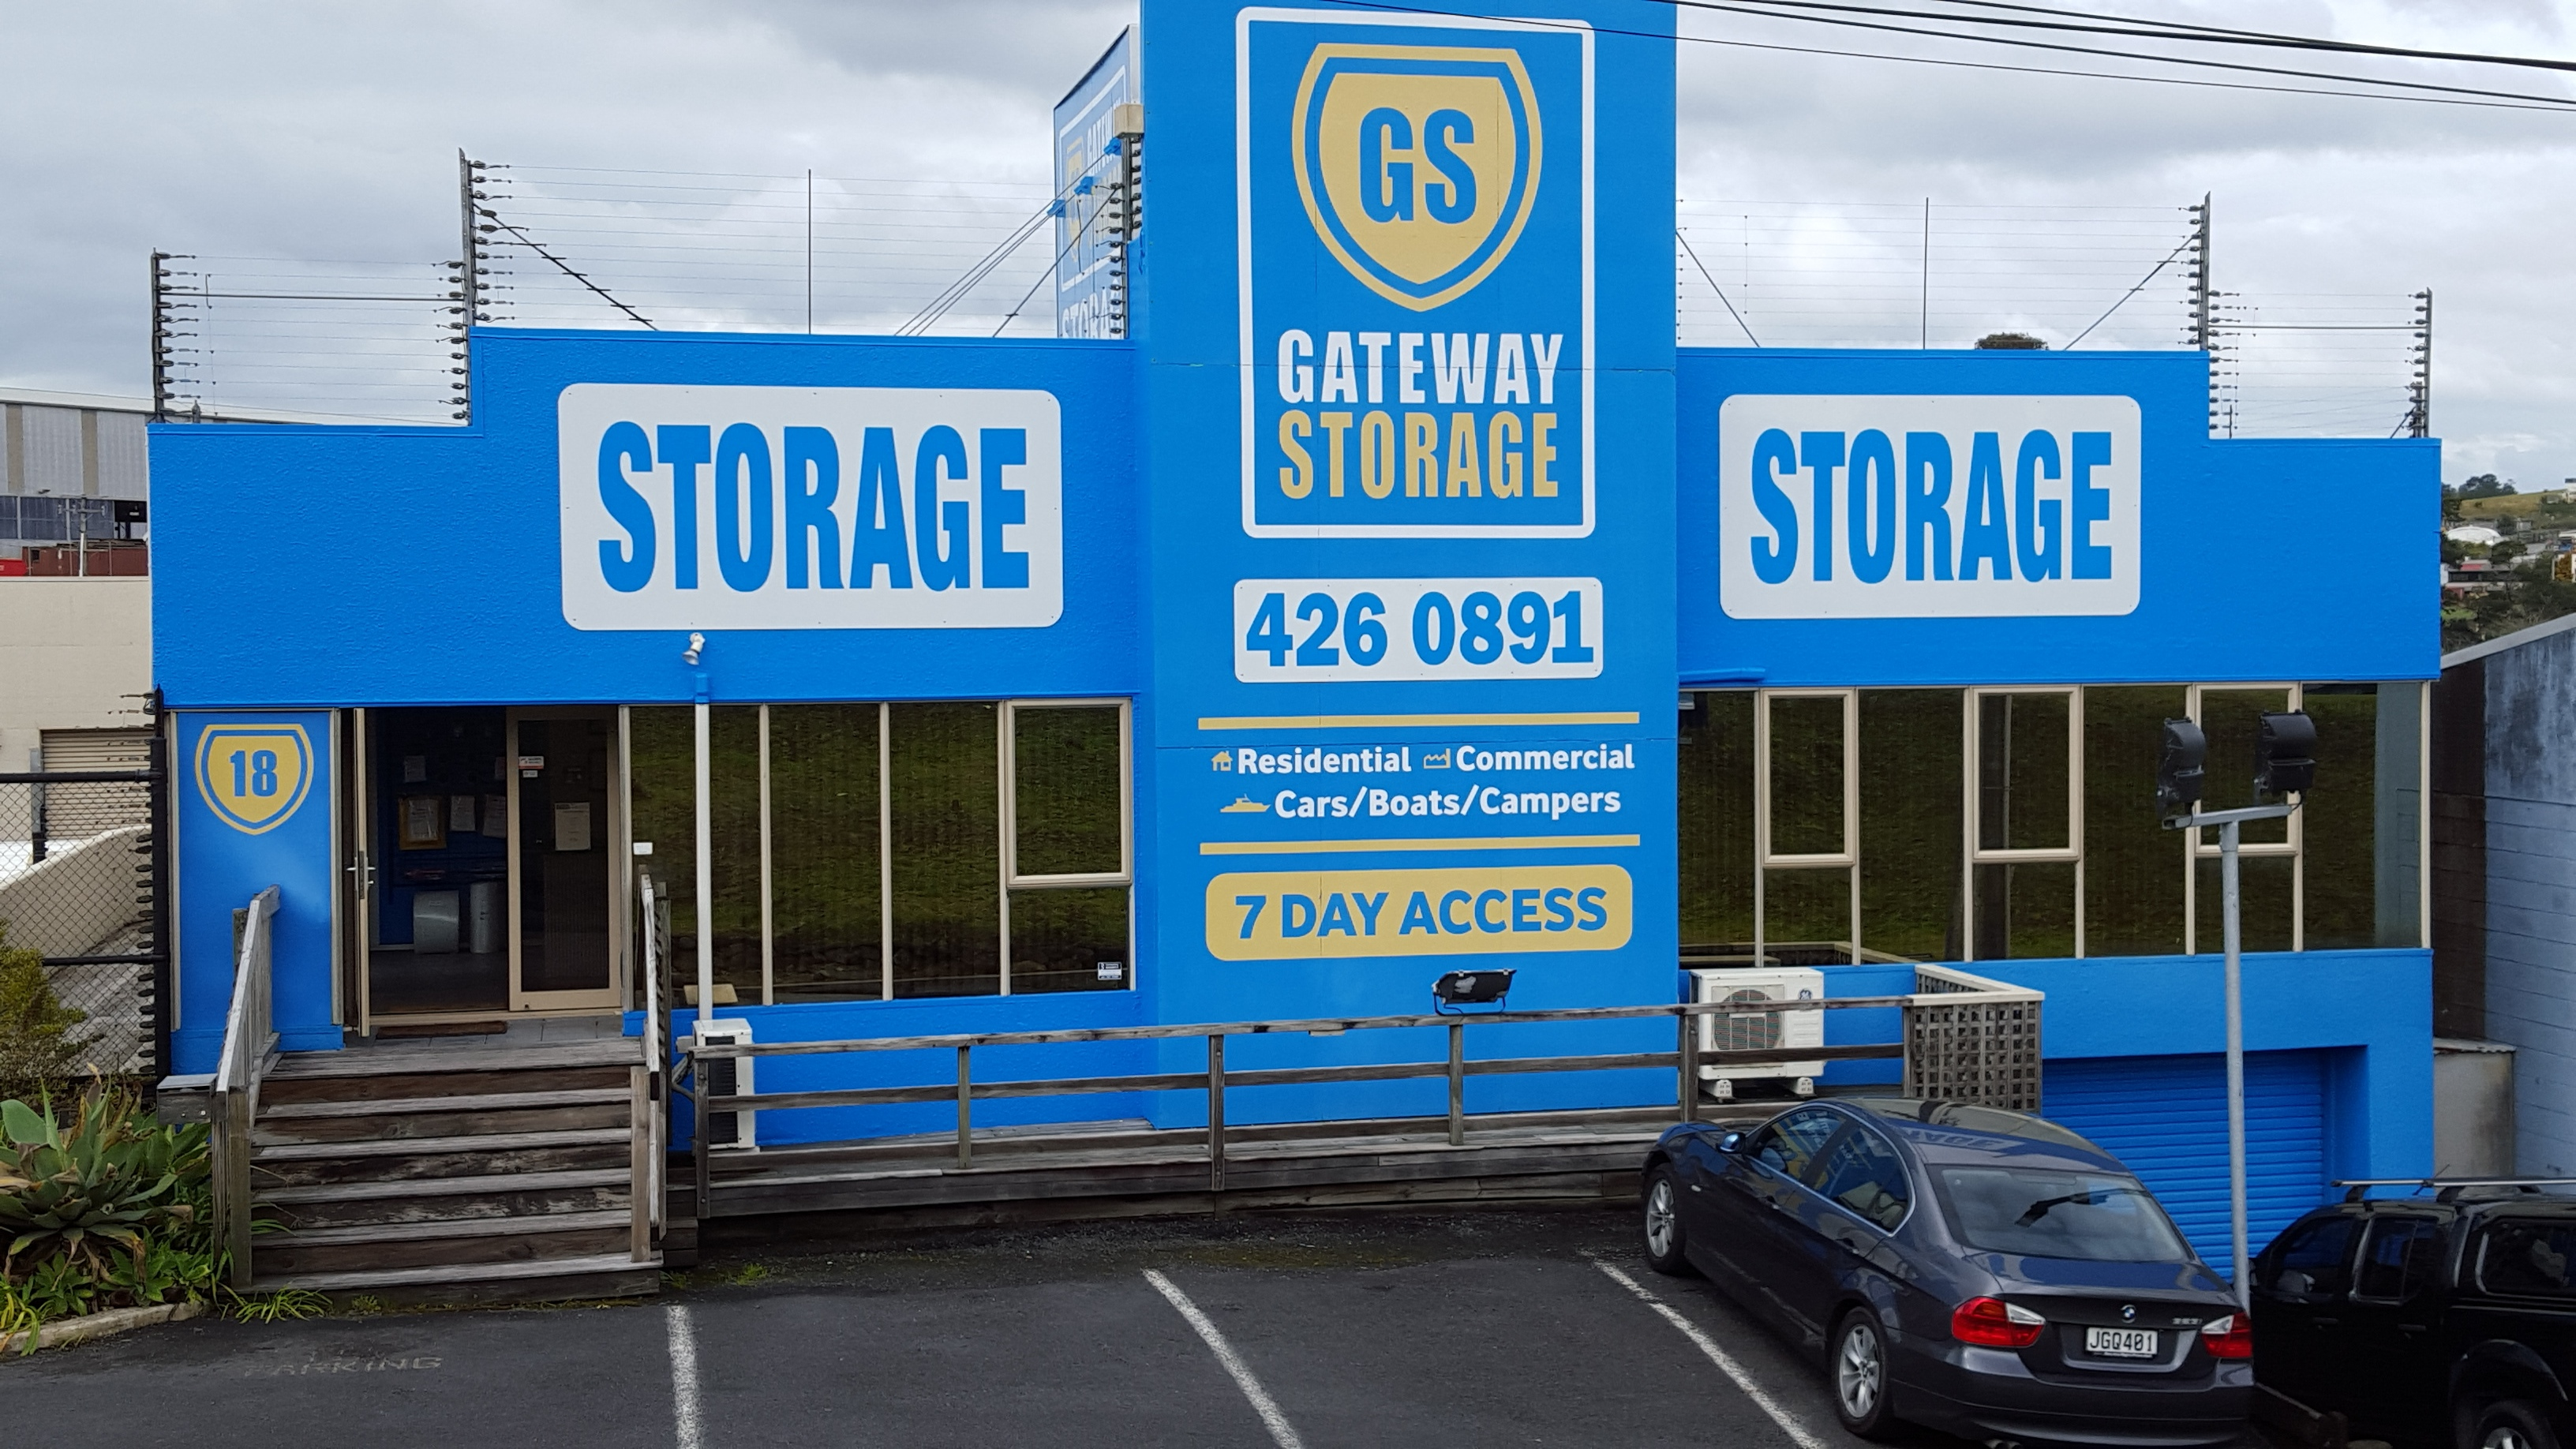 Self Storage Silverdale - Gateway Storage admin building